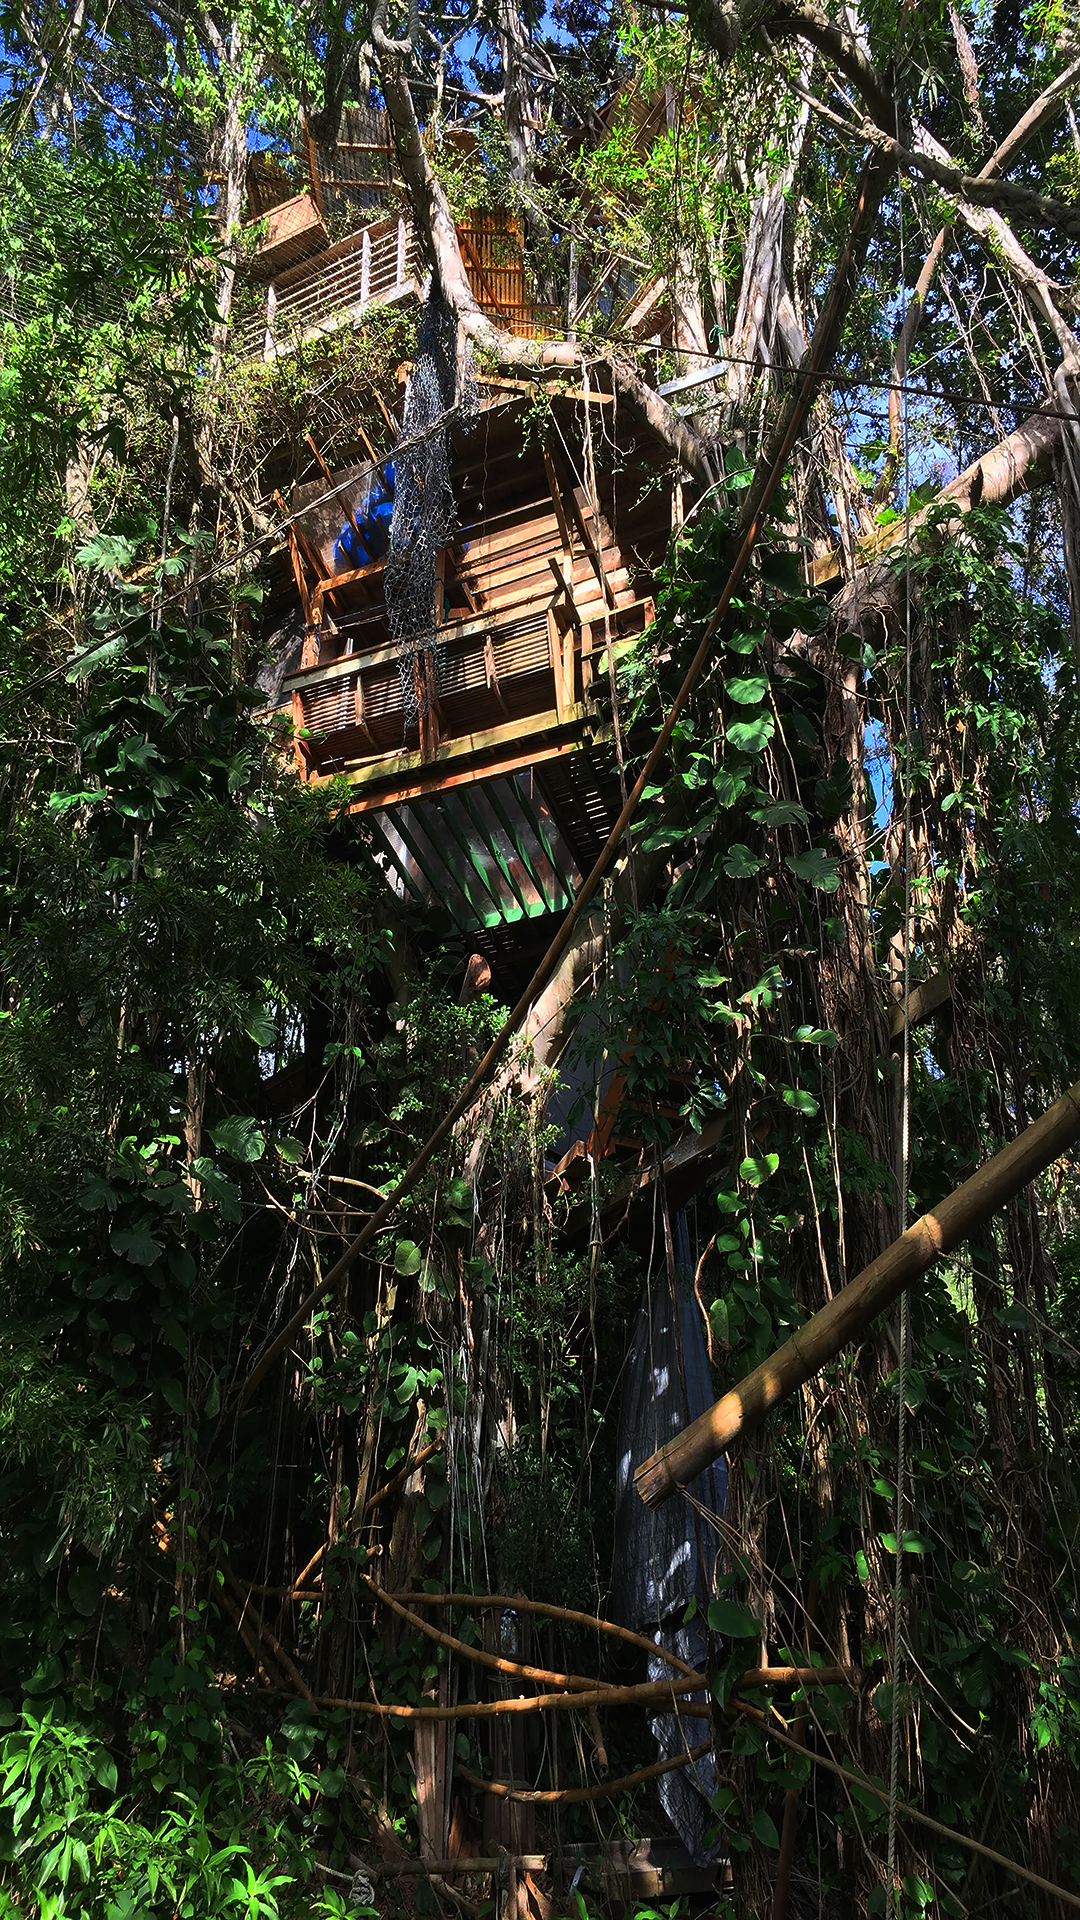 The Bridge - The five-story treehouse in Hawaii's Manoa Valley